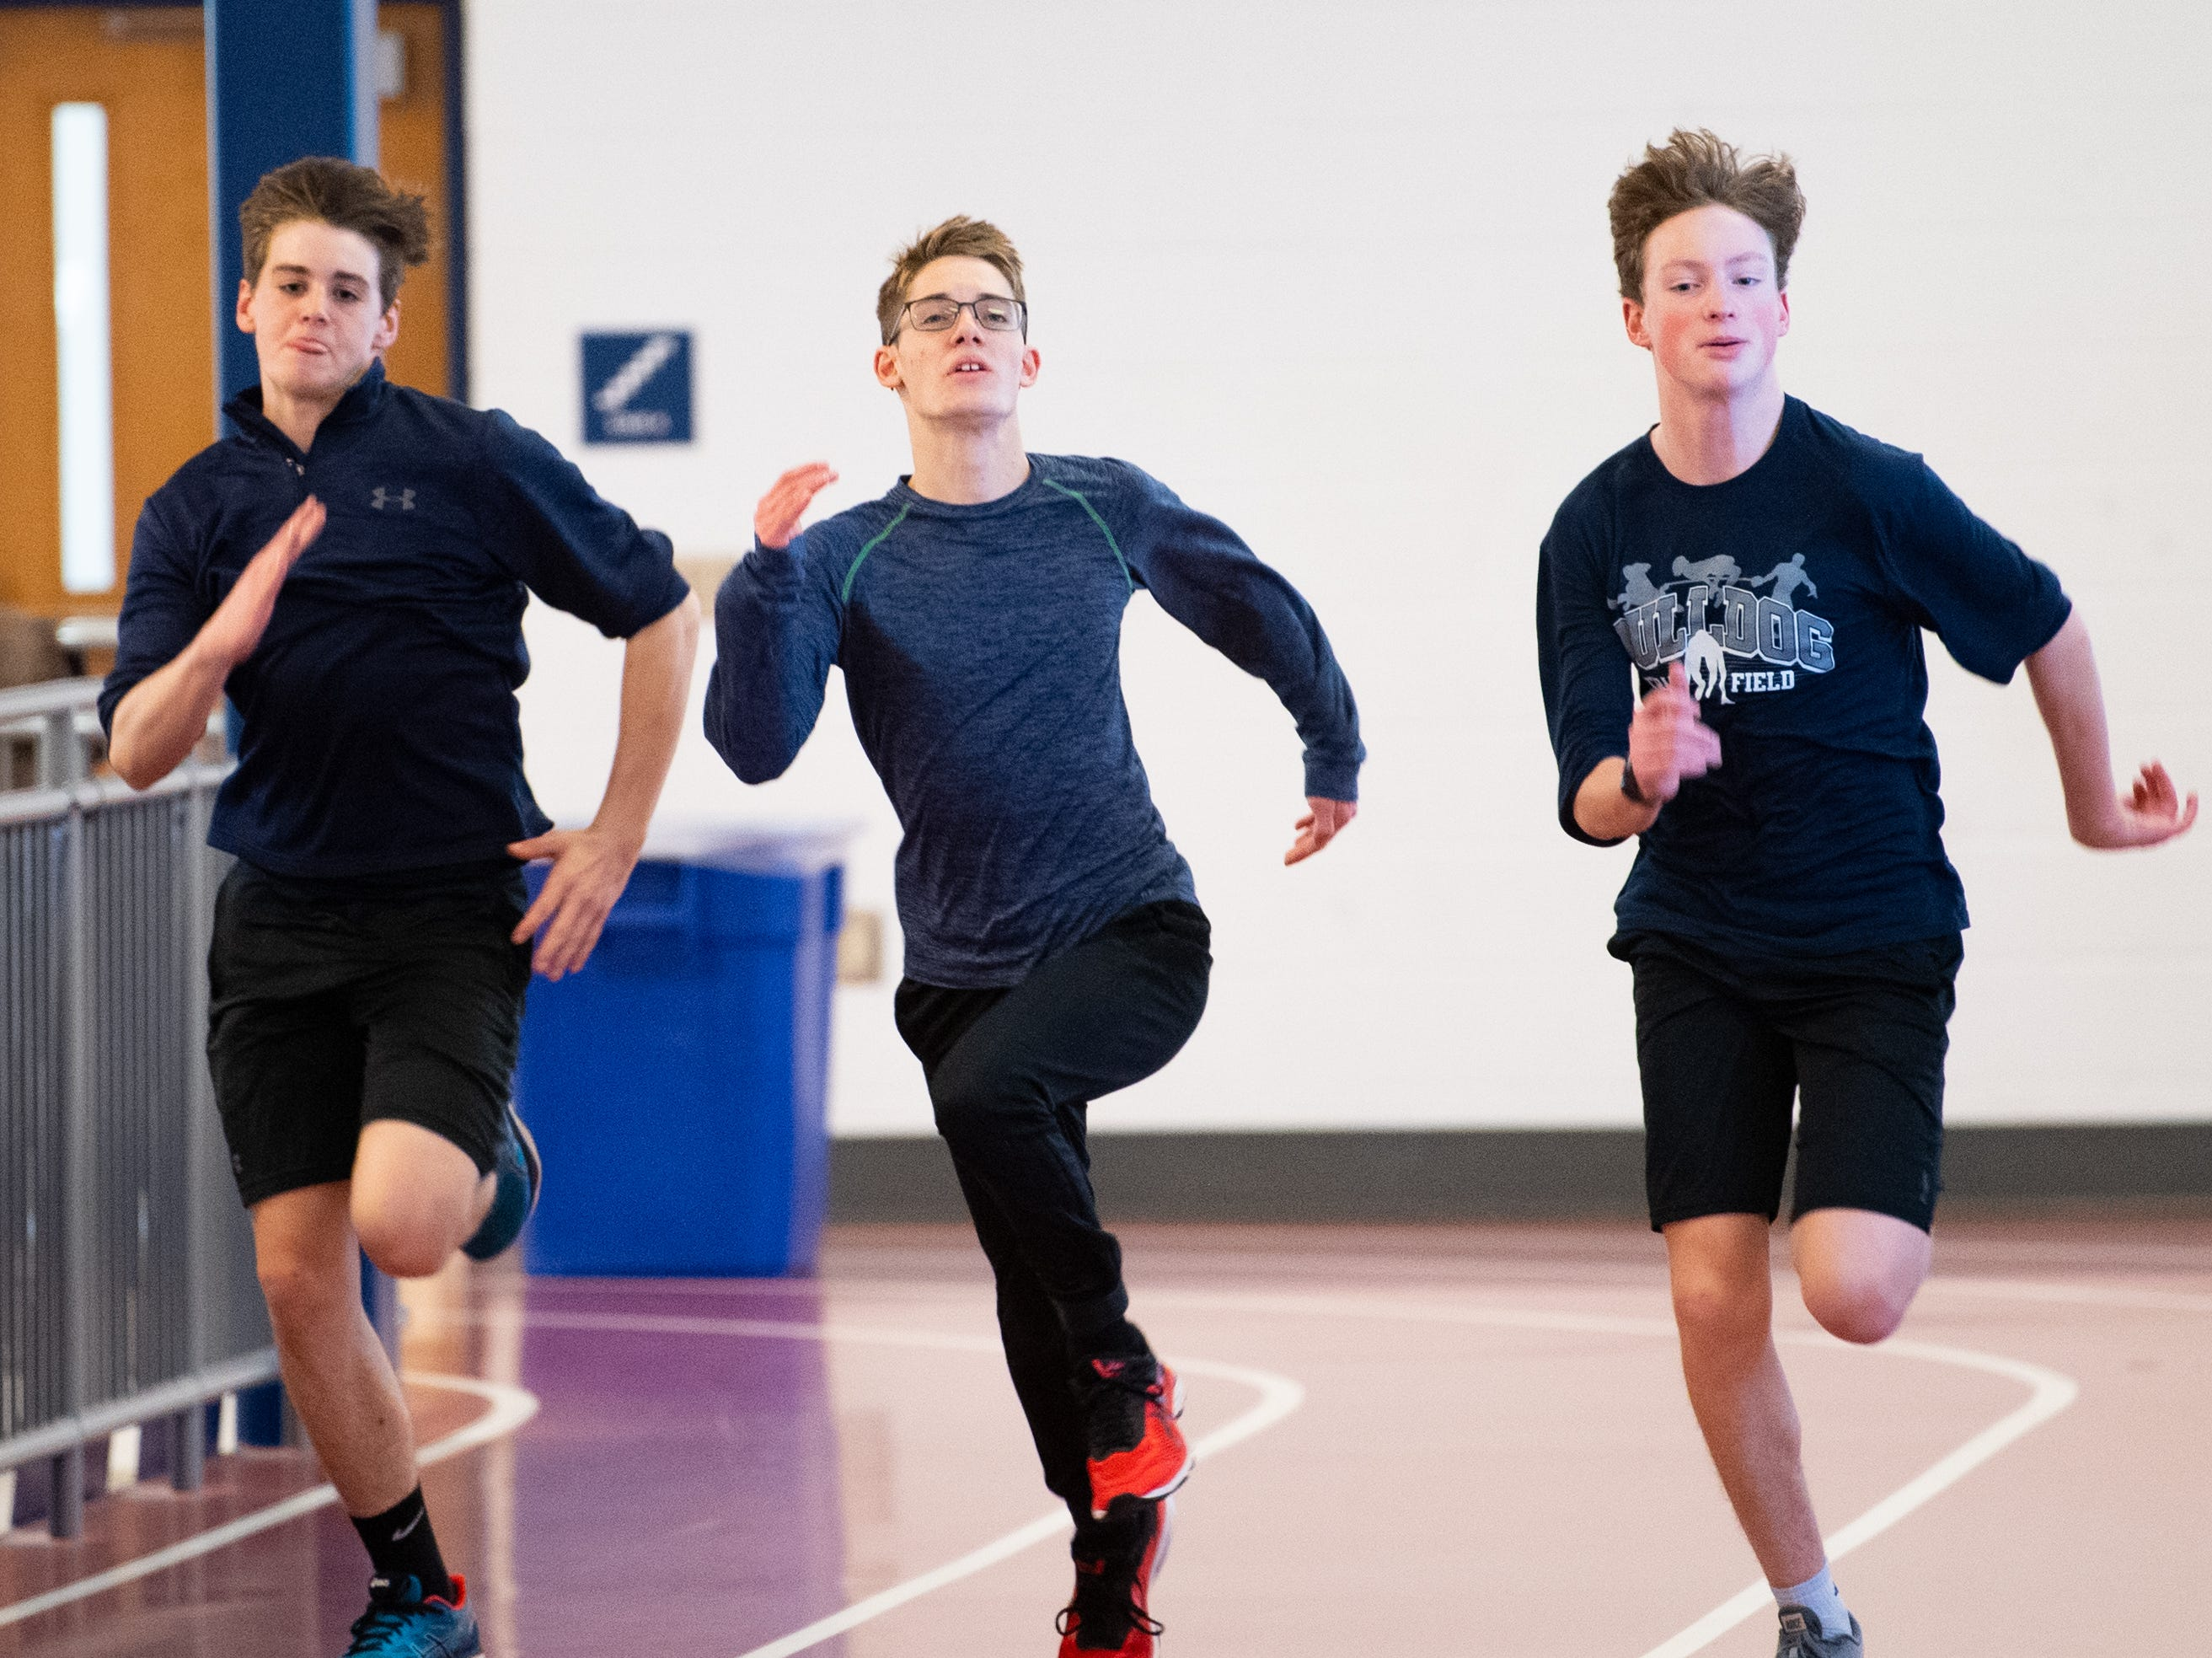 West York sprinters run back and forth, trying to best one another, March 5, 2019.